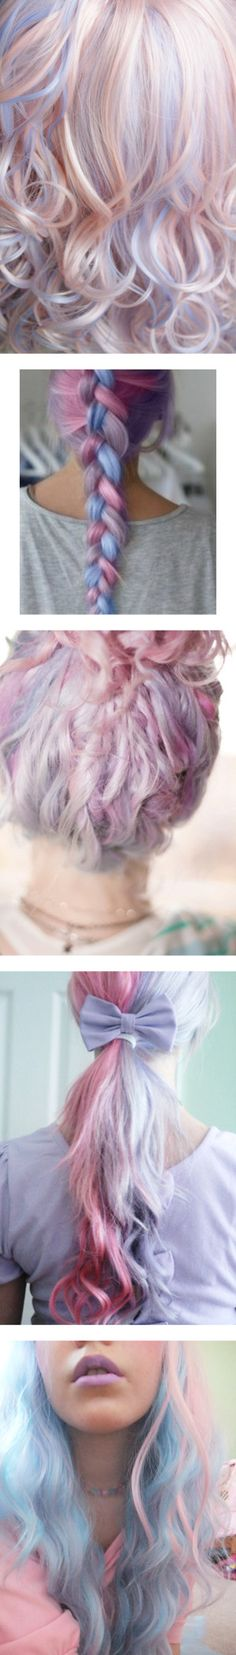 """Pastel Hair"" by liz-wade ❤ love the look and some of the styles here."